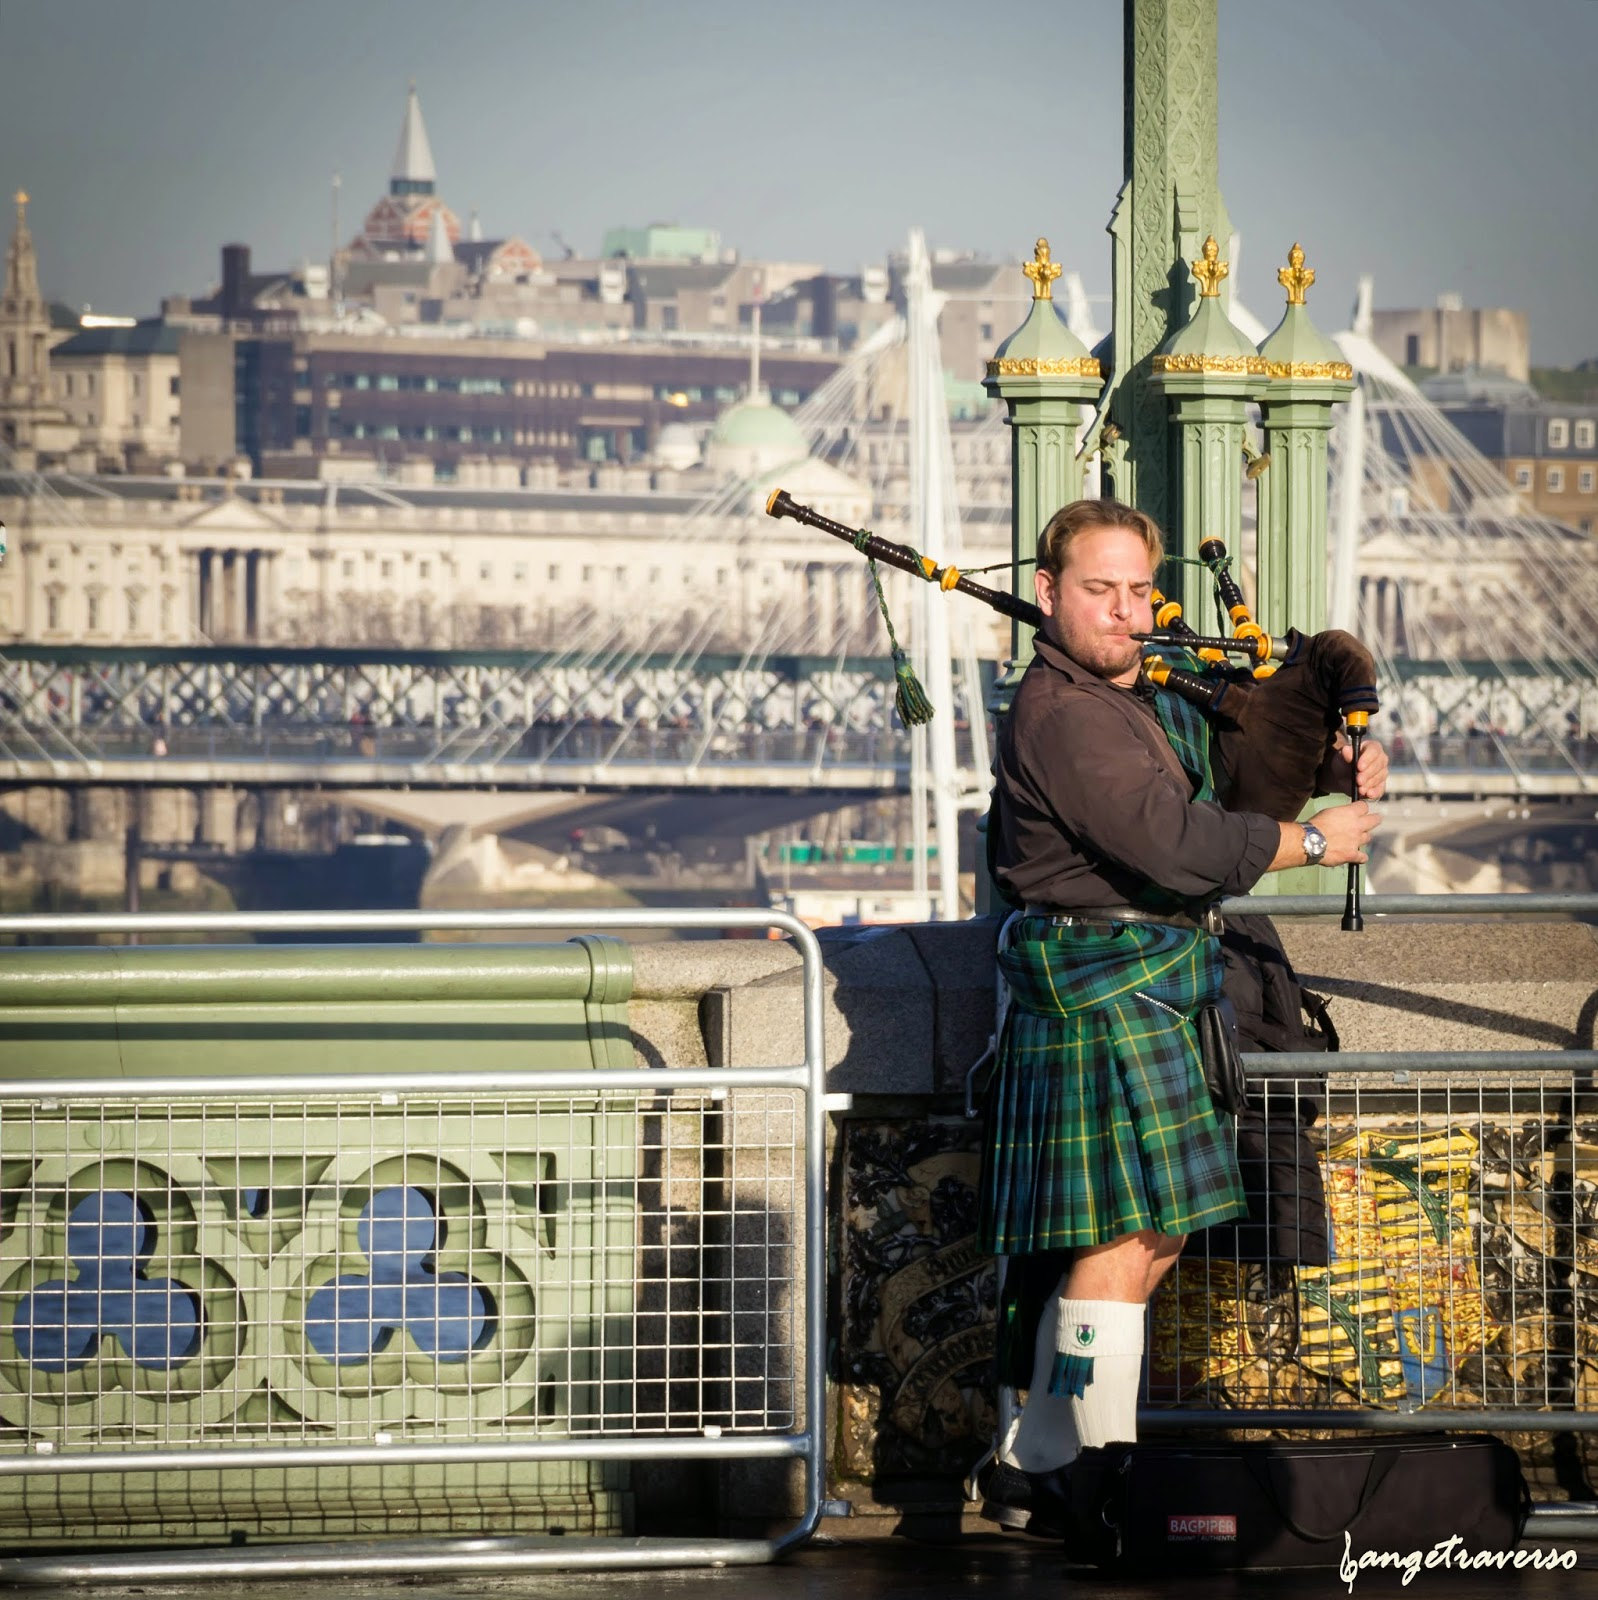 Player of pipe, since Westminster Bridge, London